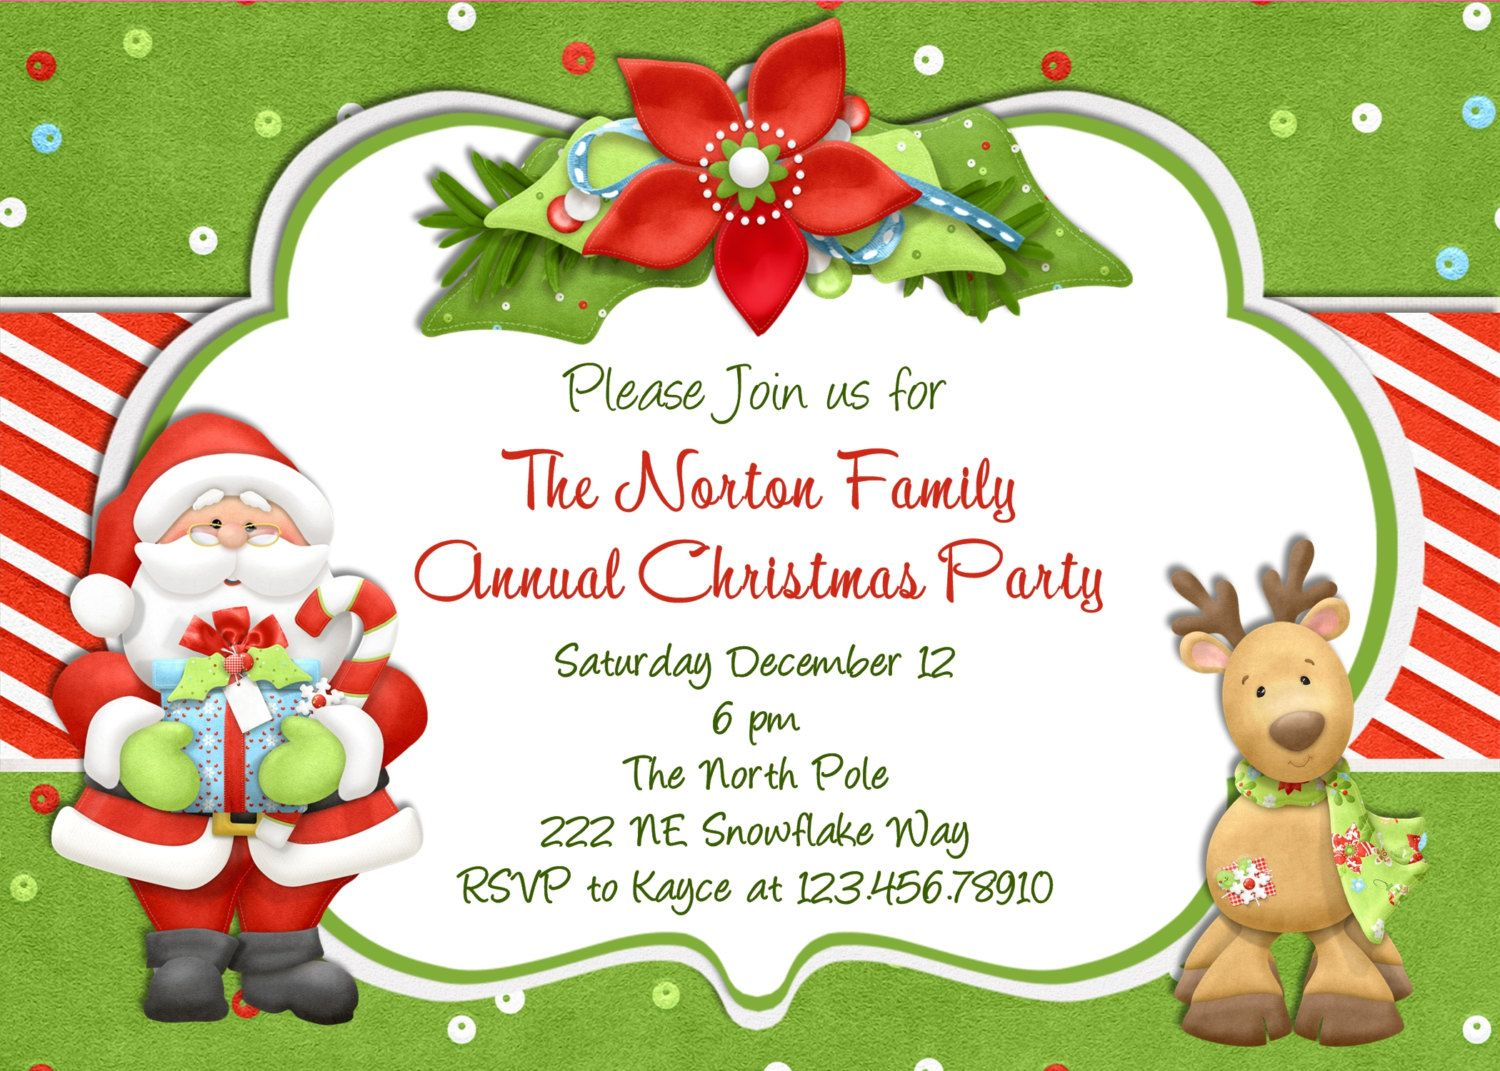 Party Invitations Christmas Party Invitatons Happy Happy Z0AIyV4u ...